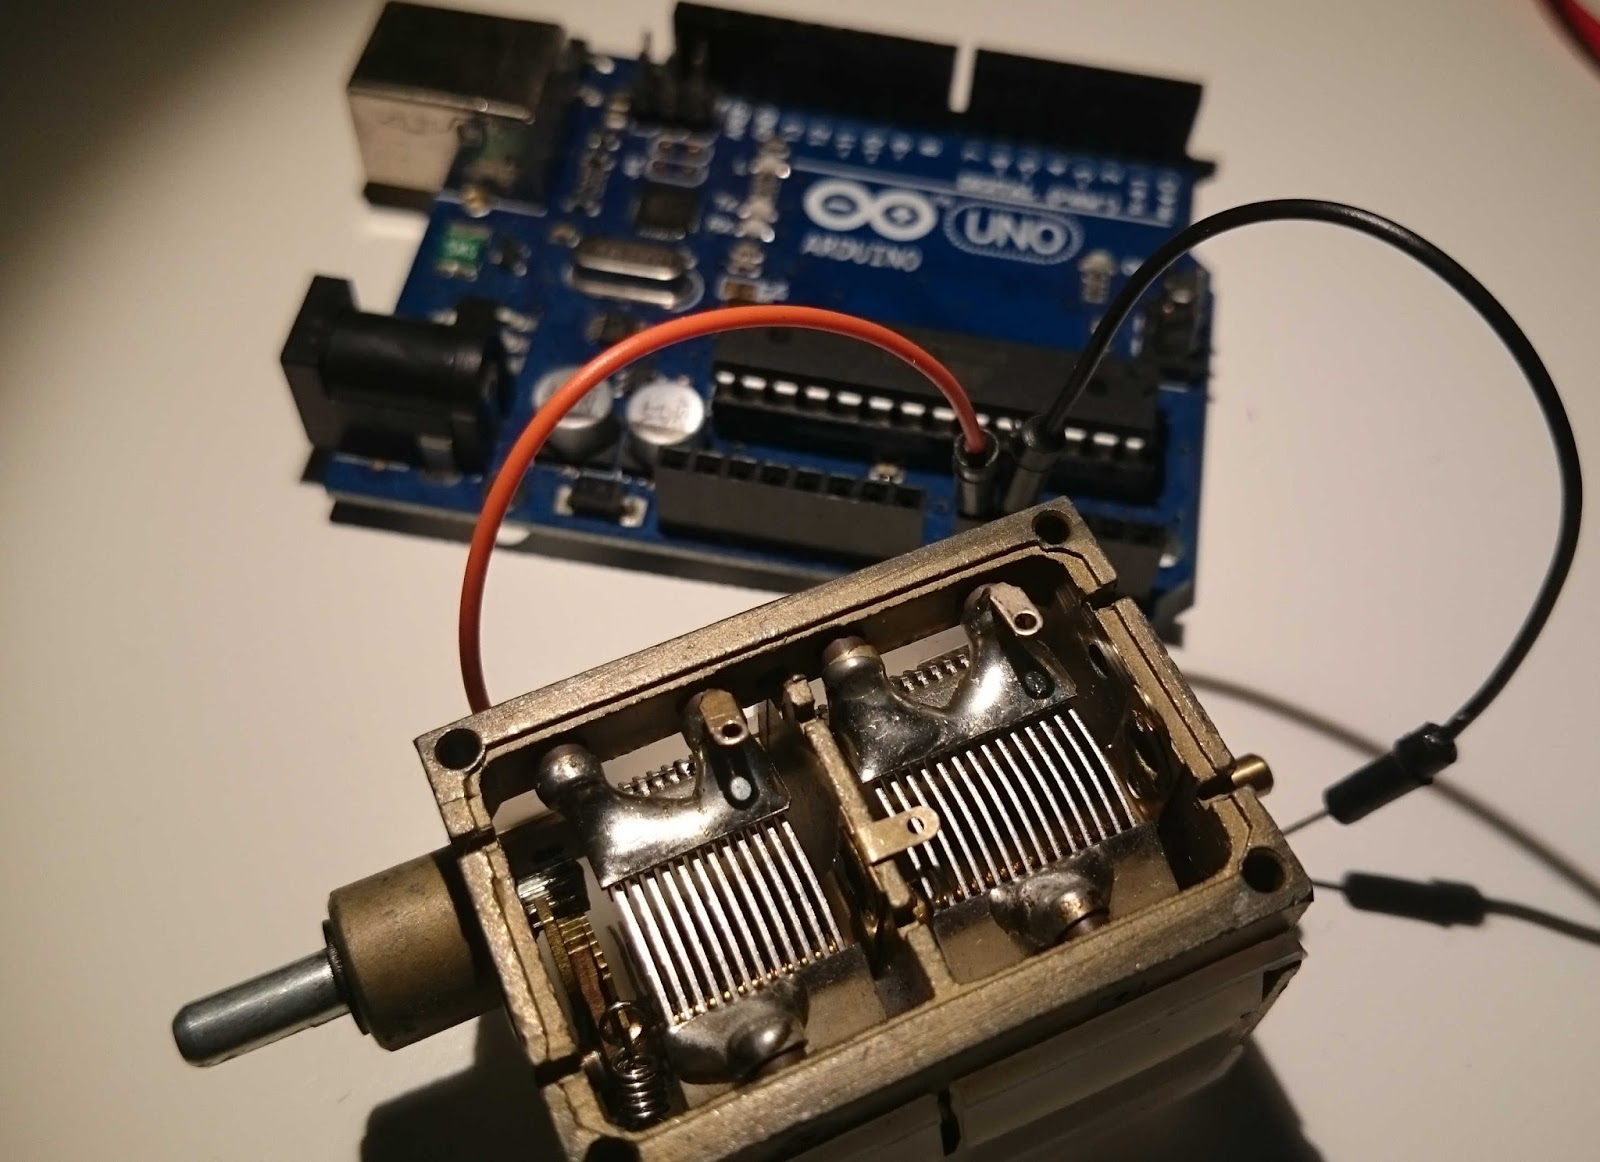 Learn On The Fly How To Test Pf Range Of A Variable Capacitor Tester Schematic With An Arduino Uno Or Any Atmega328 Boards Beginner